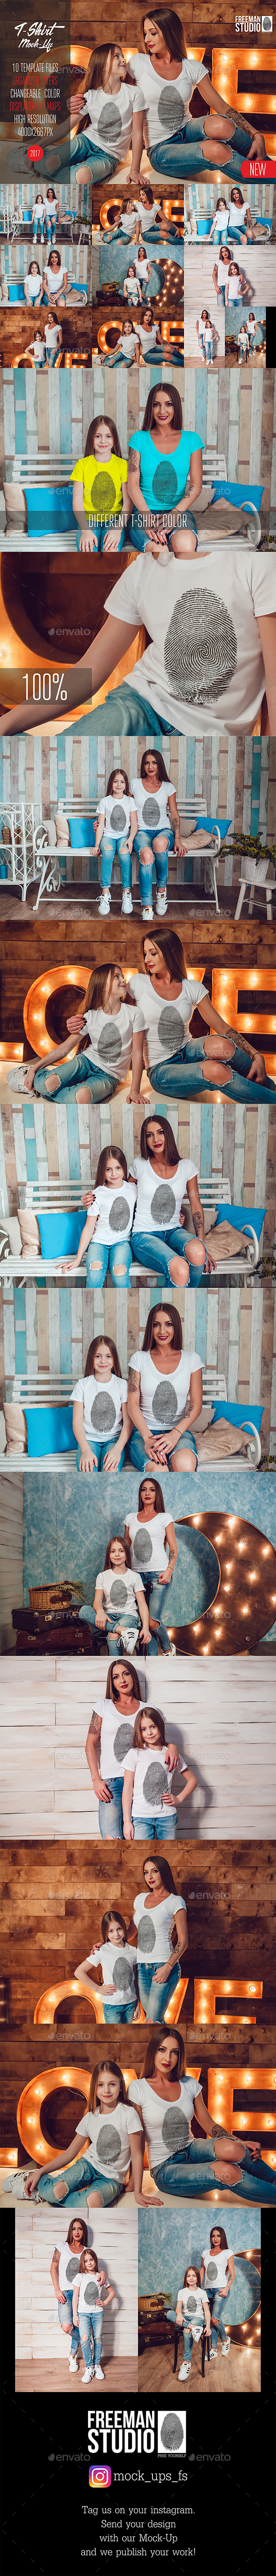 Family T-Shirt Mock-Up Vol.1 2017 - Product Mock-Ups Graphics